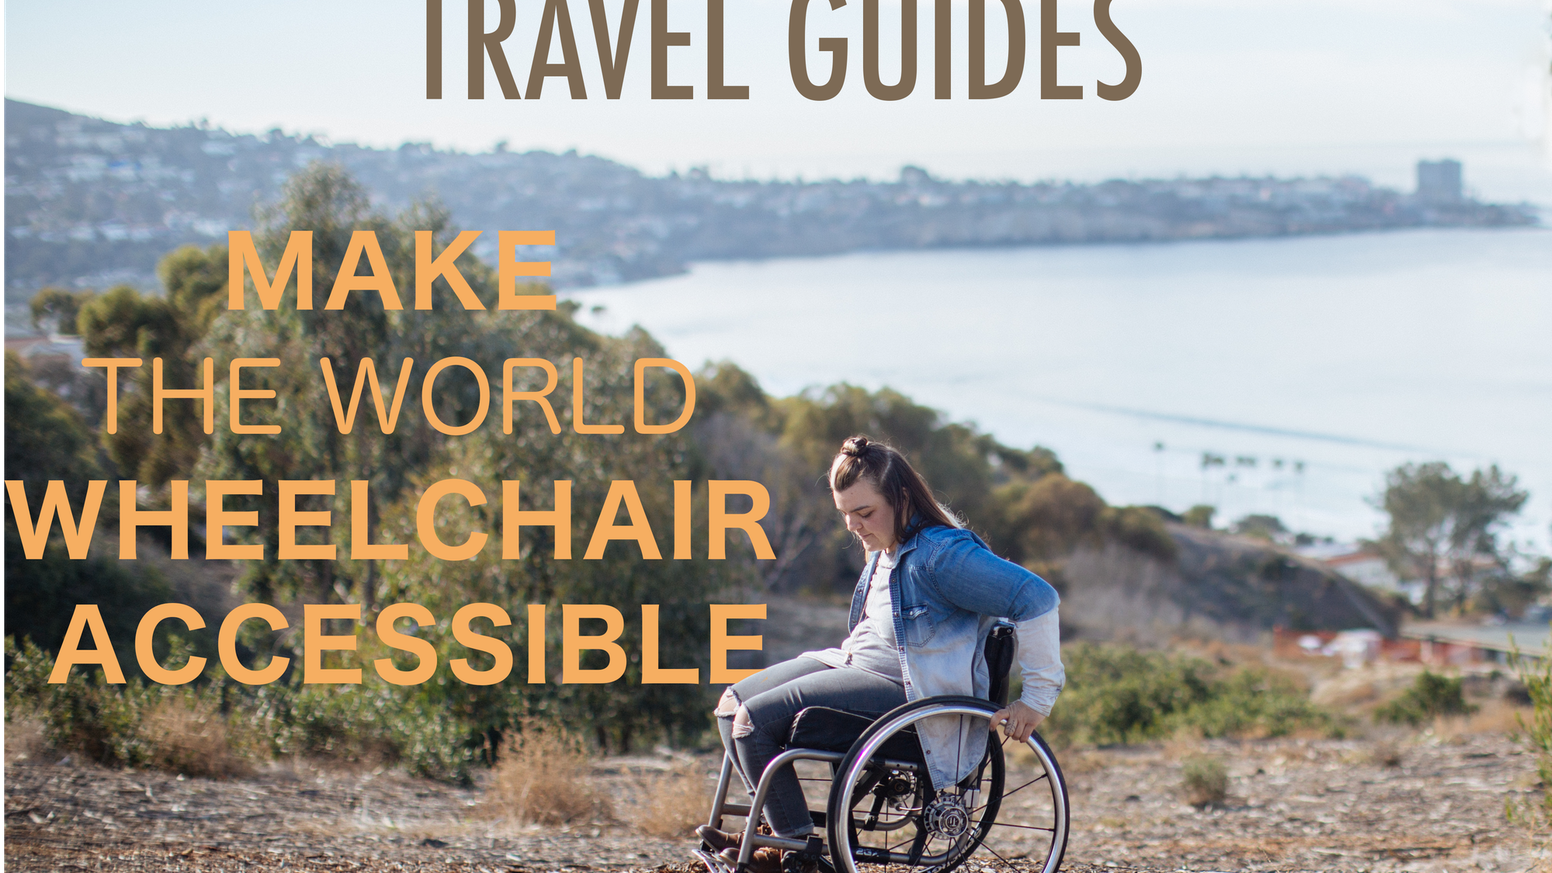 The world's first design-forward, socially sustainable travel guide series for authentic travelers